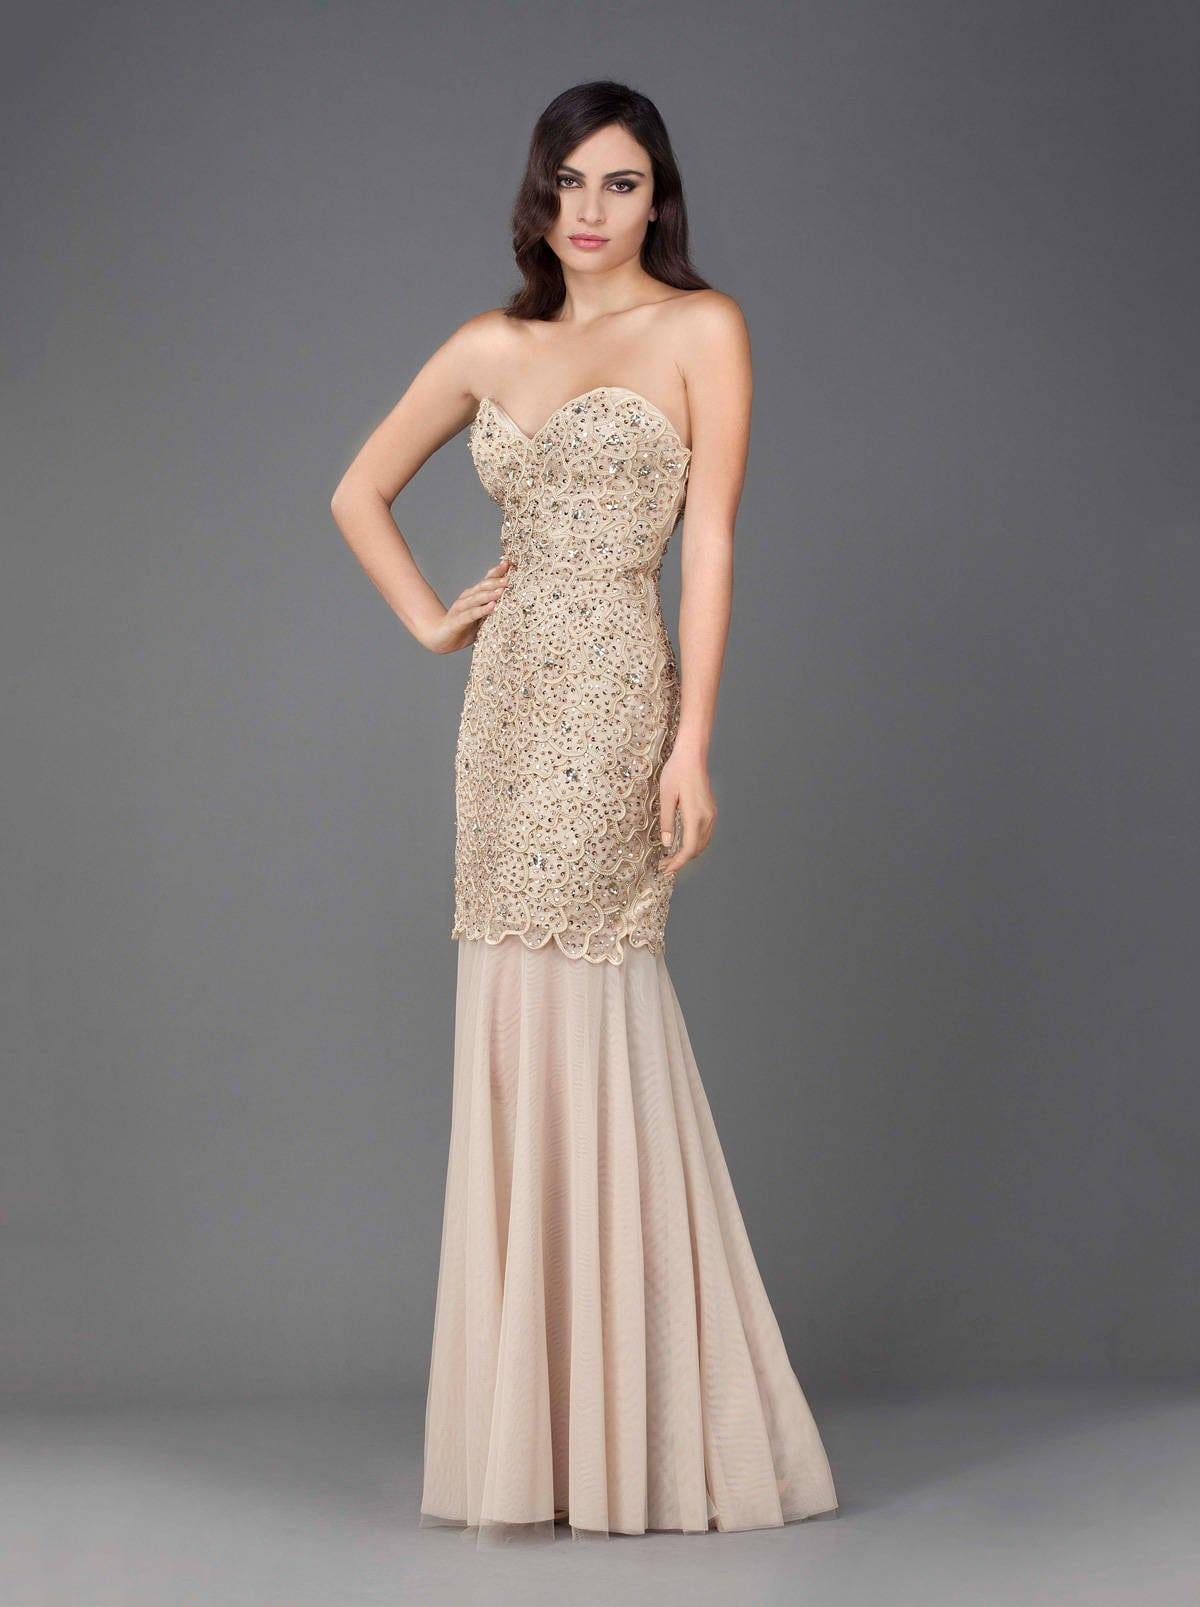 champagne colored evening dresses photo - 1